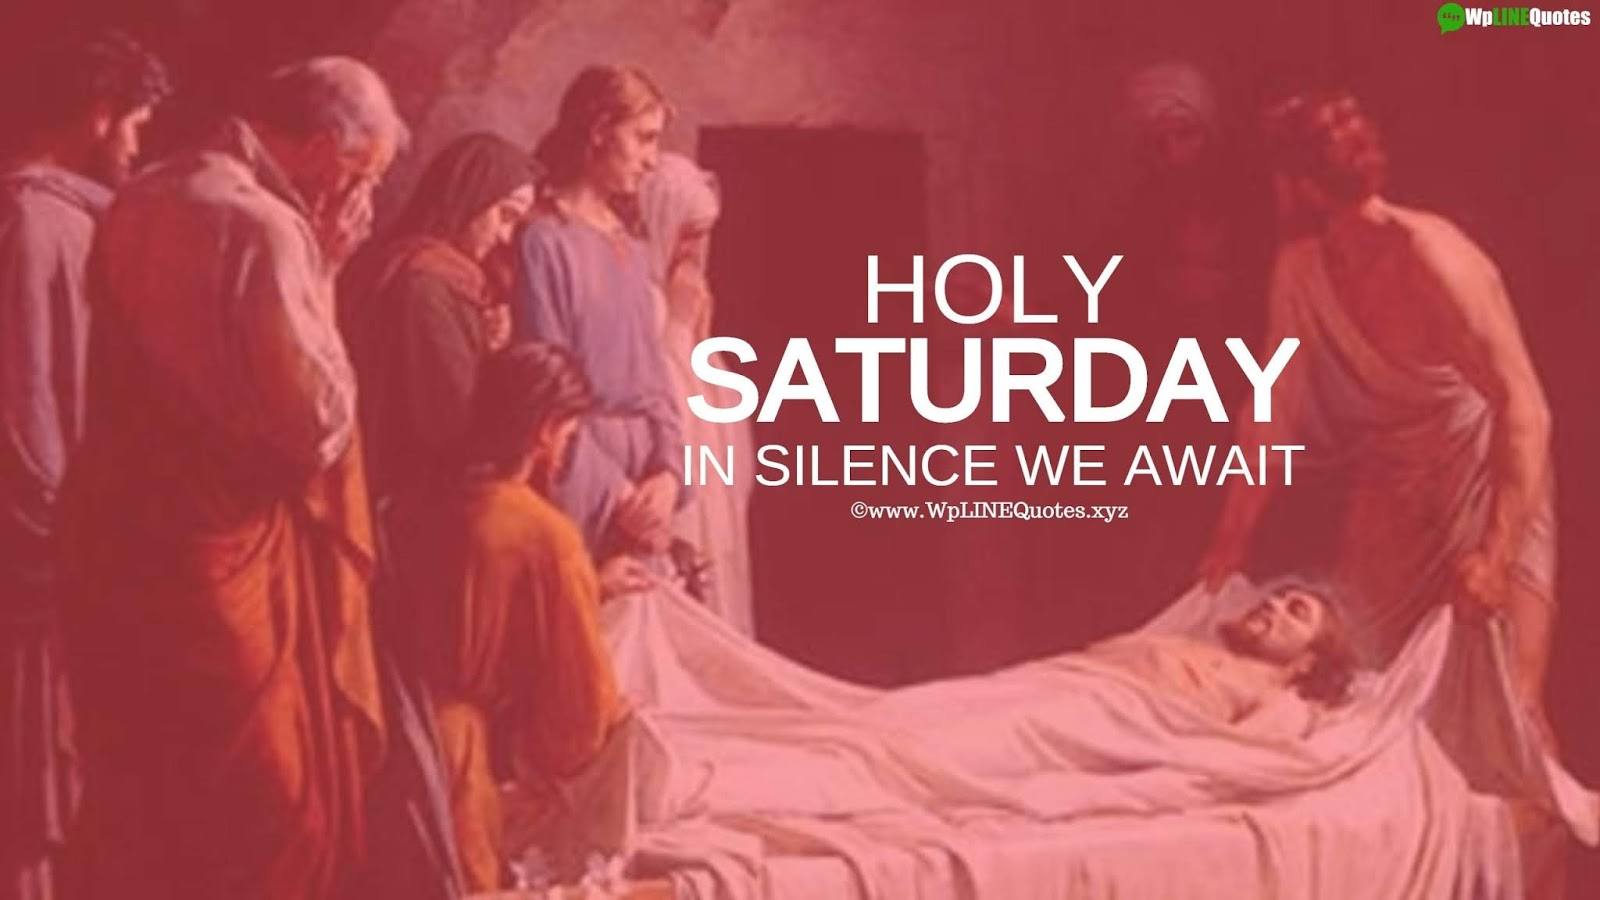 Holy Saturday Quotes, Wishes, Greetings, Message, History, Images, Pictures, Wallpaper